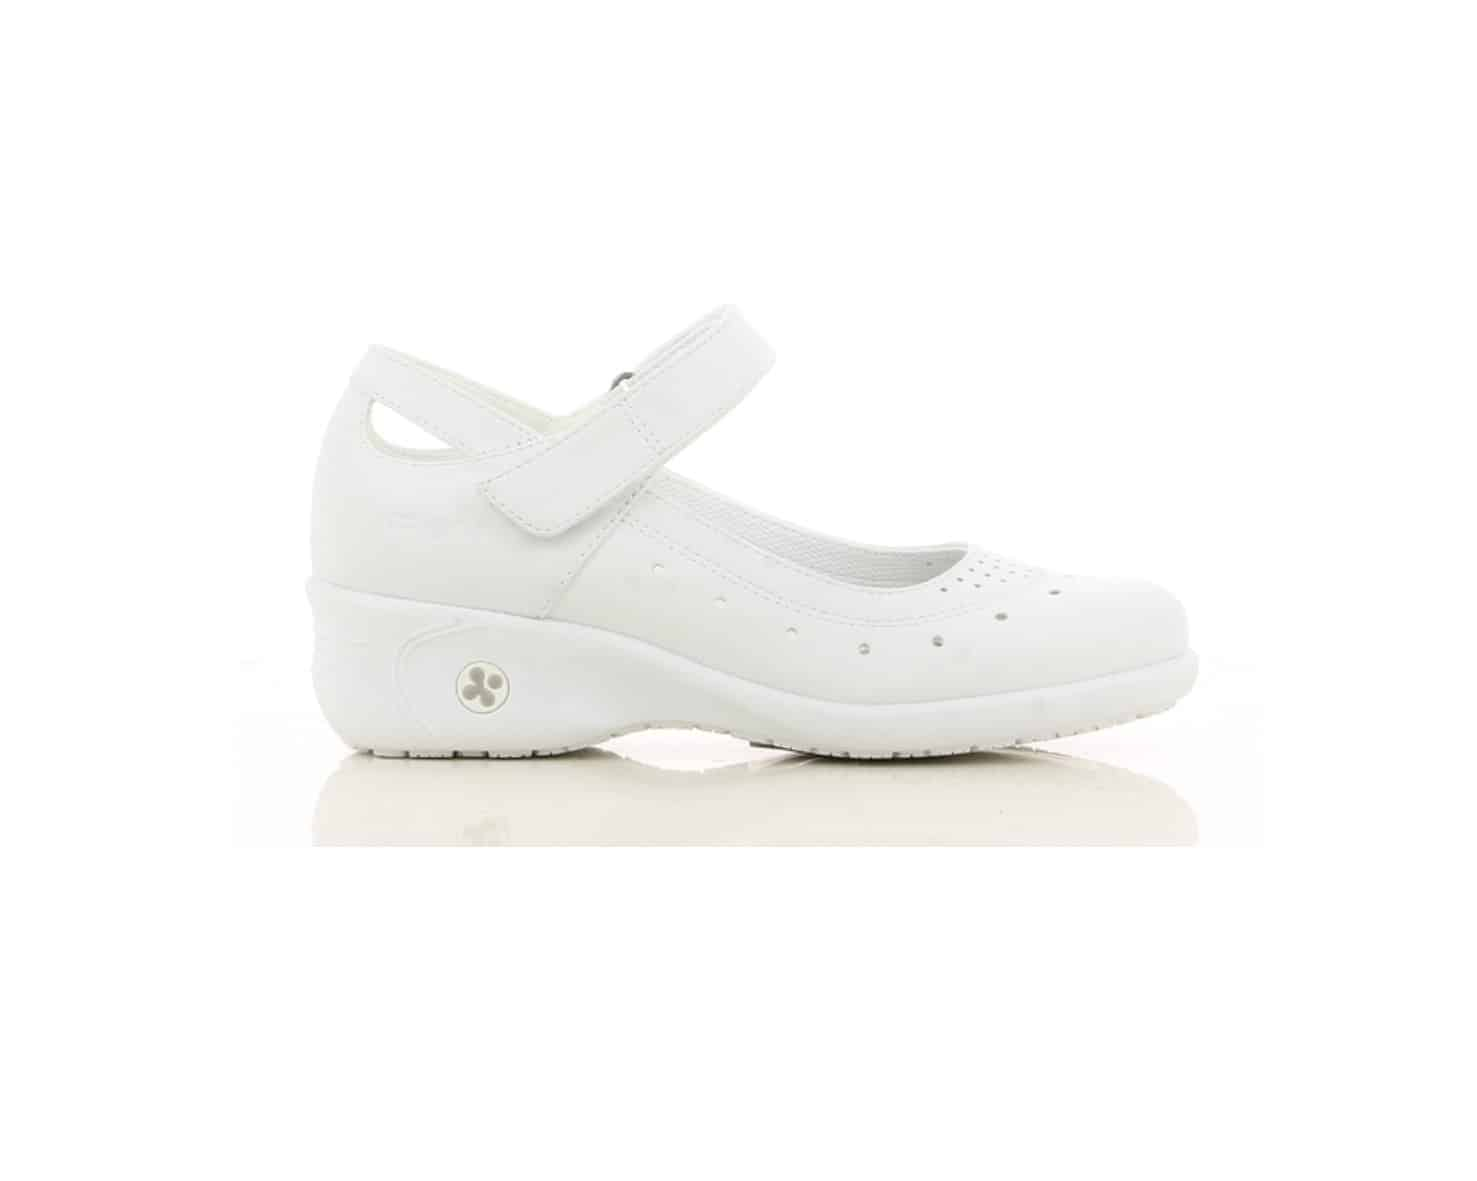 Oxypas 'Olive', Slip-on, Anti-slip, Anti-static, Mary-Jane Style Nursing Shoe in White